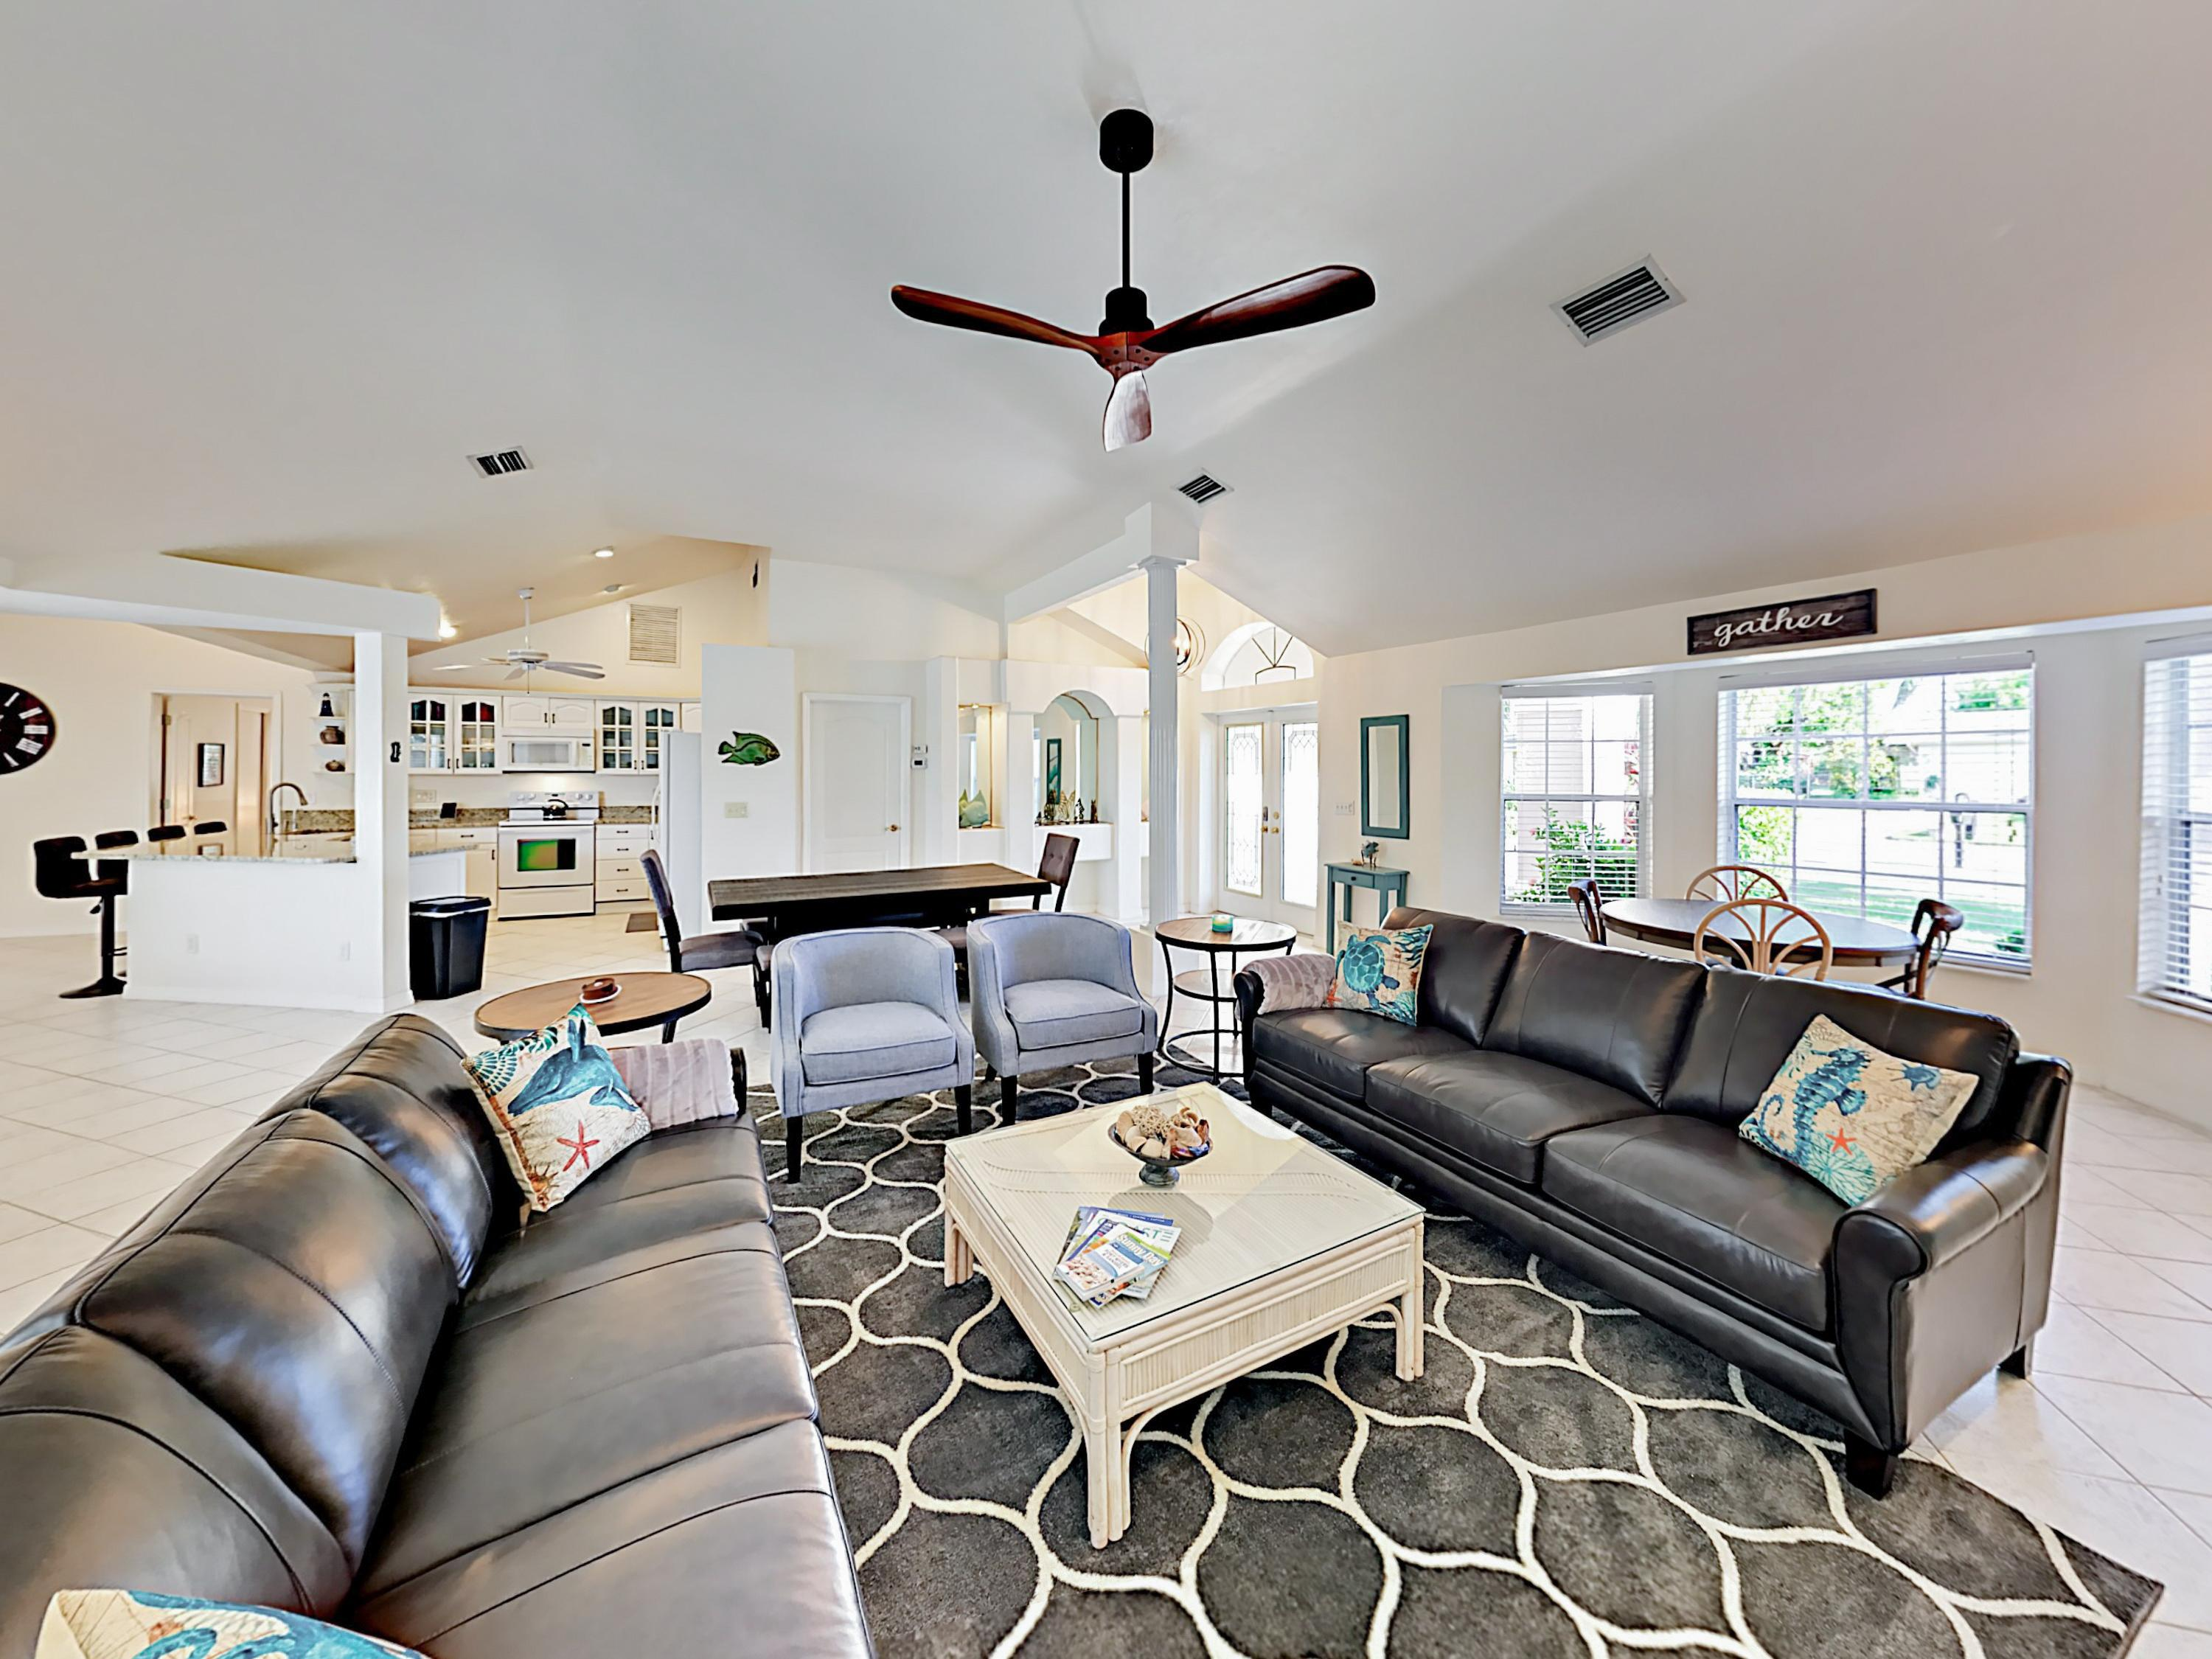 The main living area offers ample seating with a pair of couches and 2 armchairs.